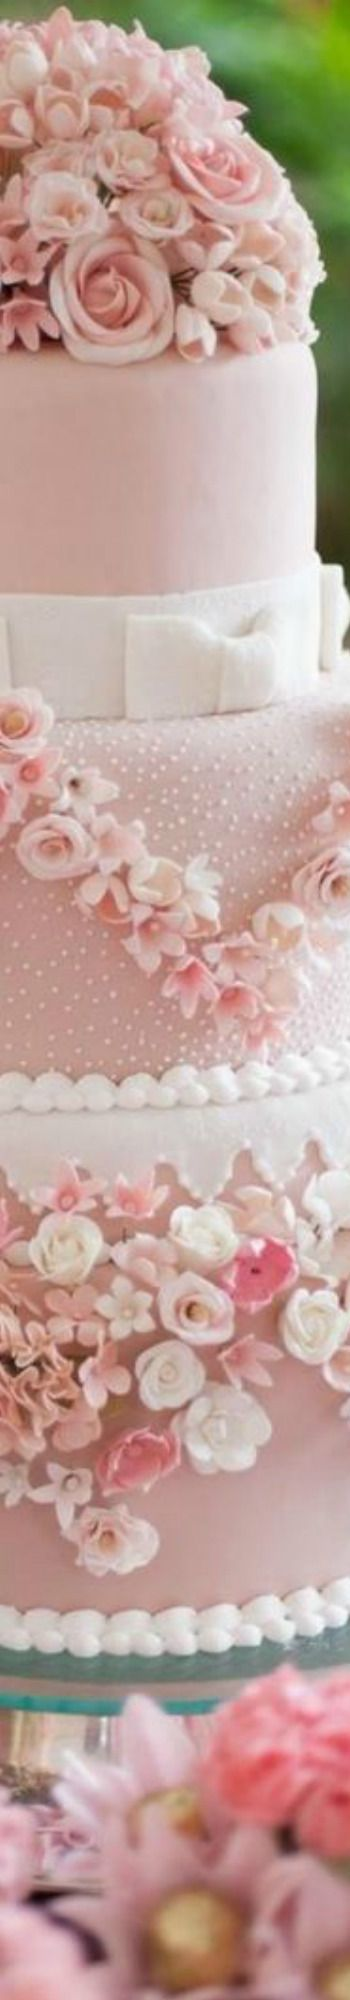 This would be a gorgeous cake for our vow renewal.